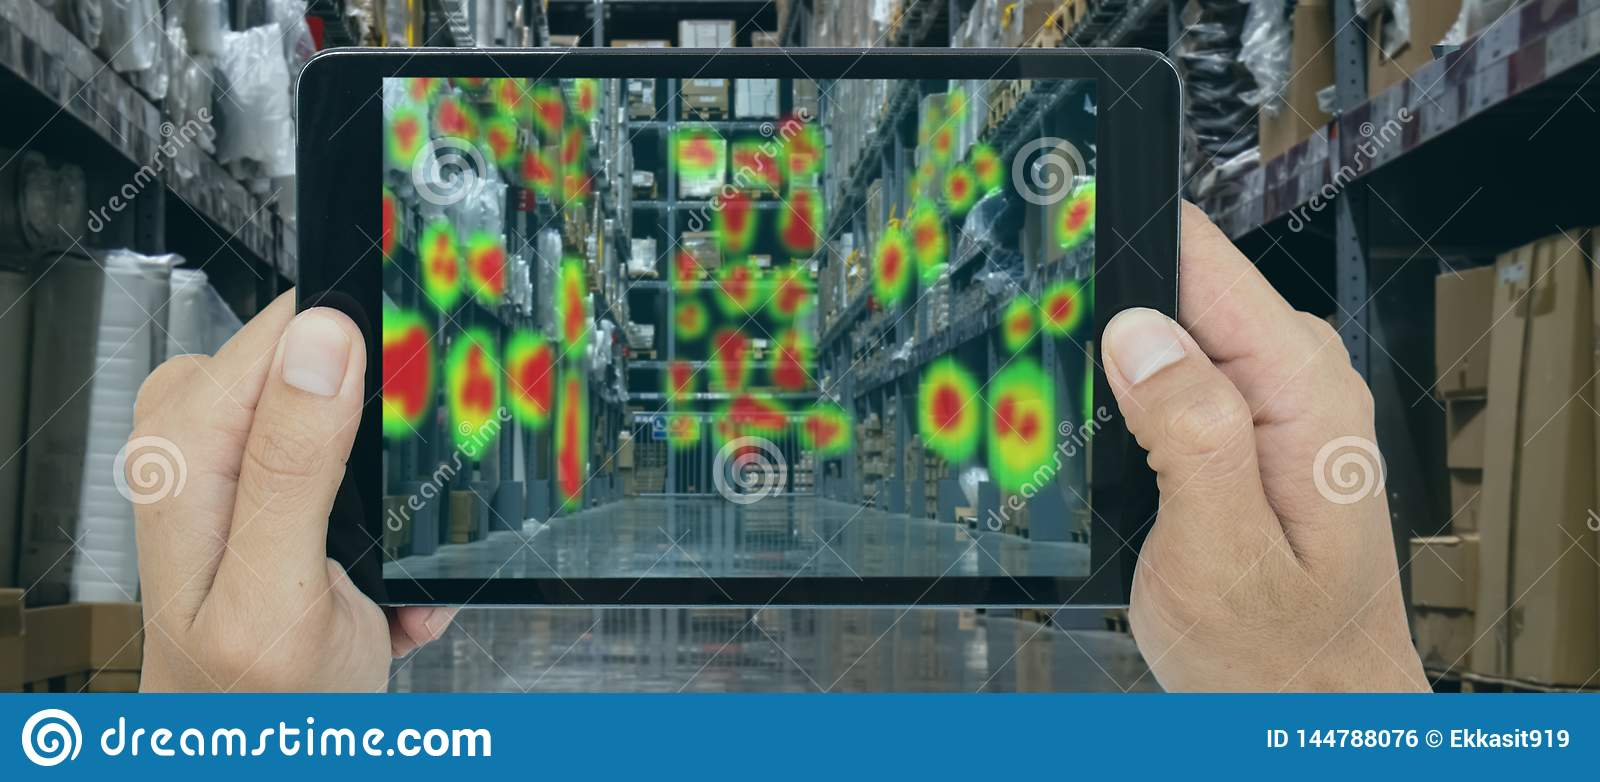 Augmented and virtual reality technology futuristic concept, Retailer use augmented combine virtual reality technology to find the